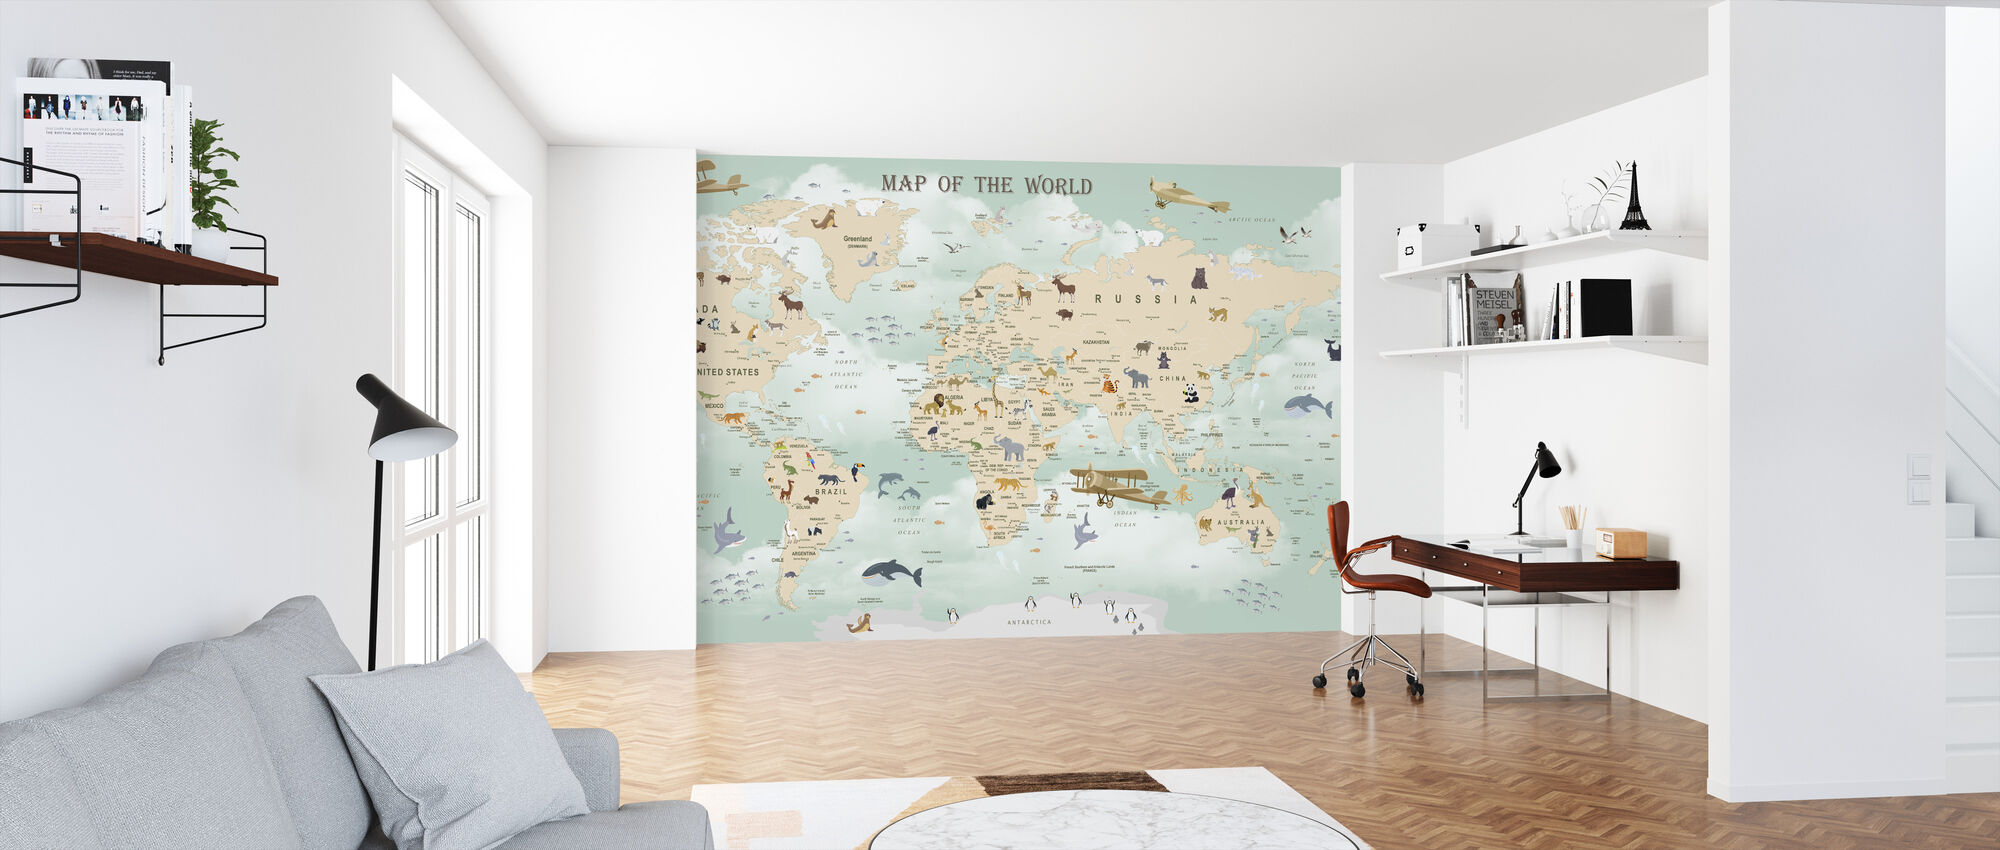 Wildlife World Map - Wallpaper - Office